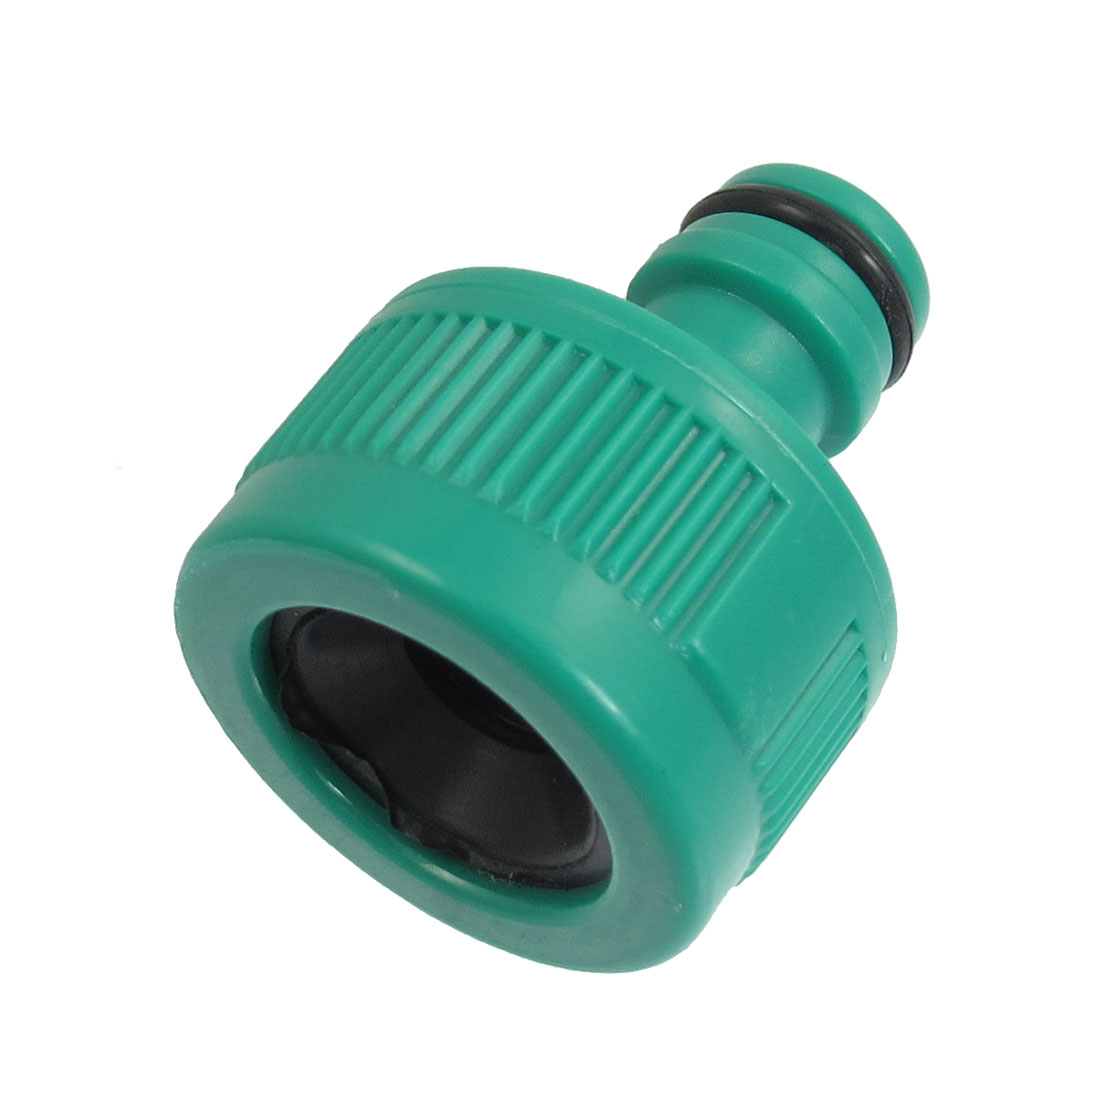 Plastic Garden 14.5mm Thread Spray Hose Nozzle Adapter Connector Green